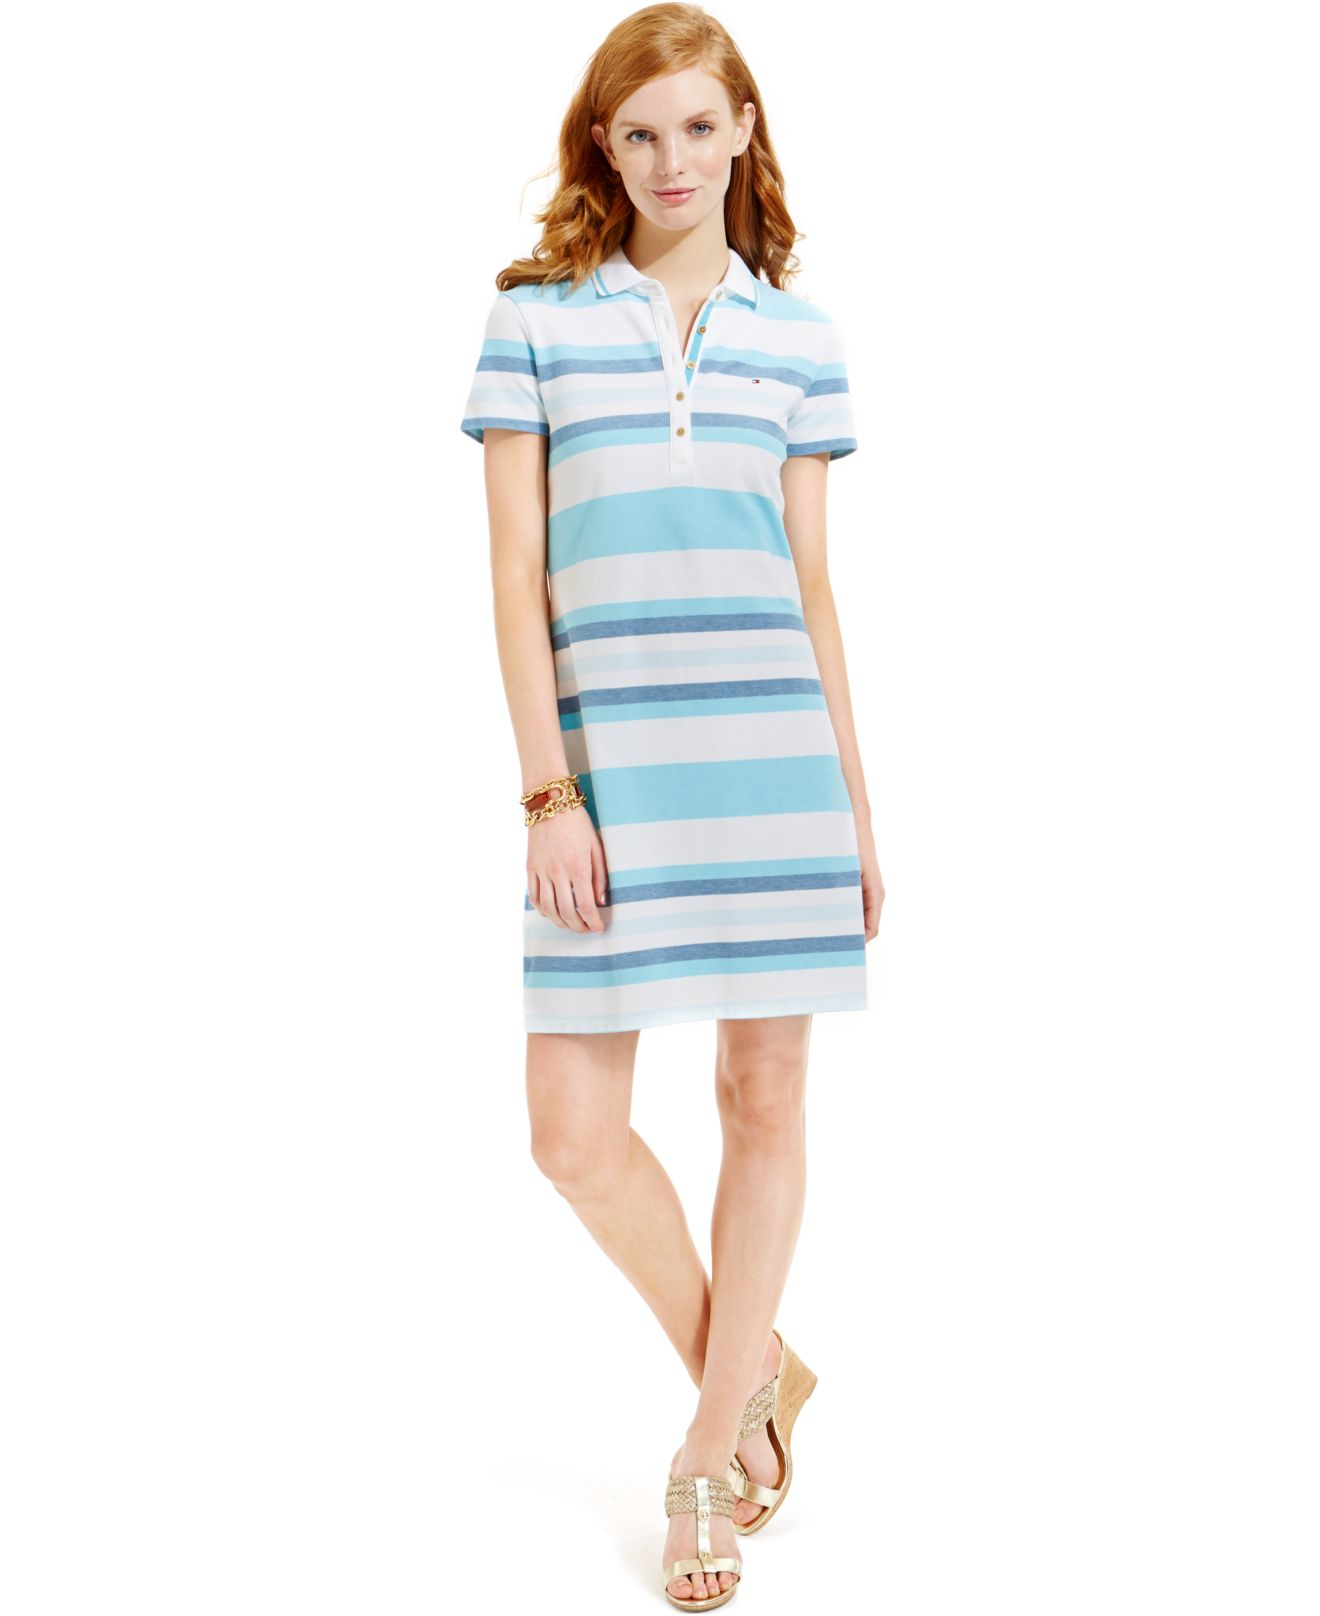 33028e25 Tommy Hilfiger Striped Polo Shirt Dress in Blue - Lyst